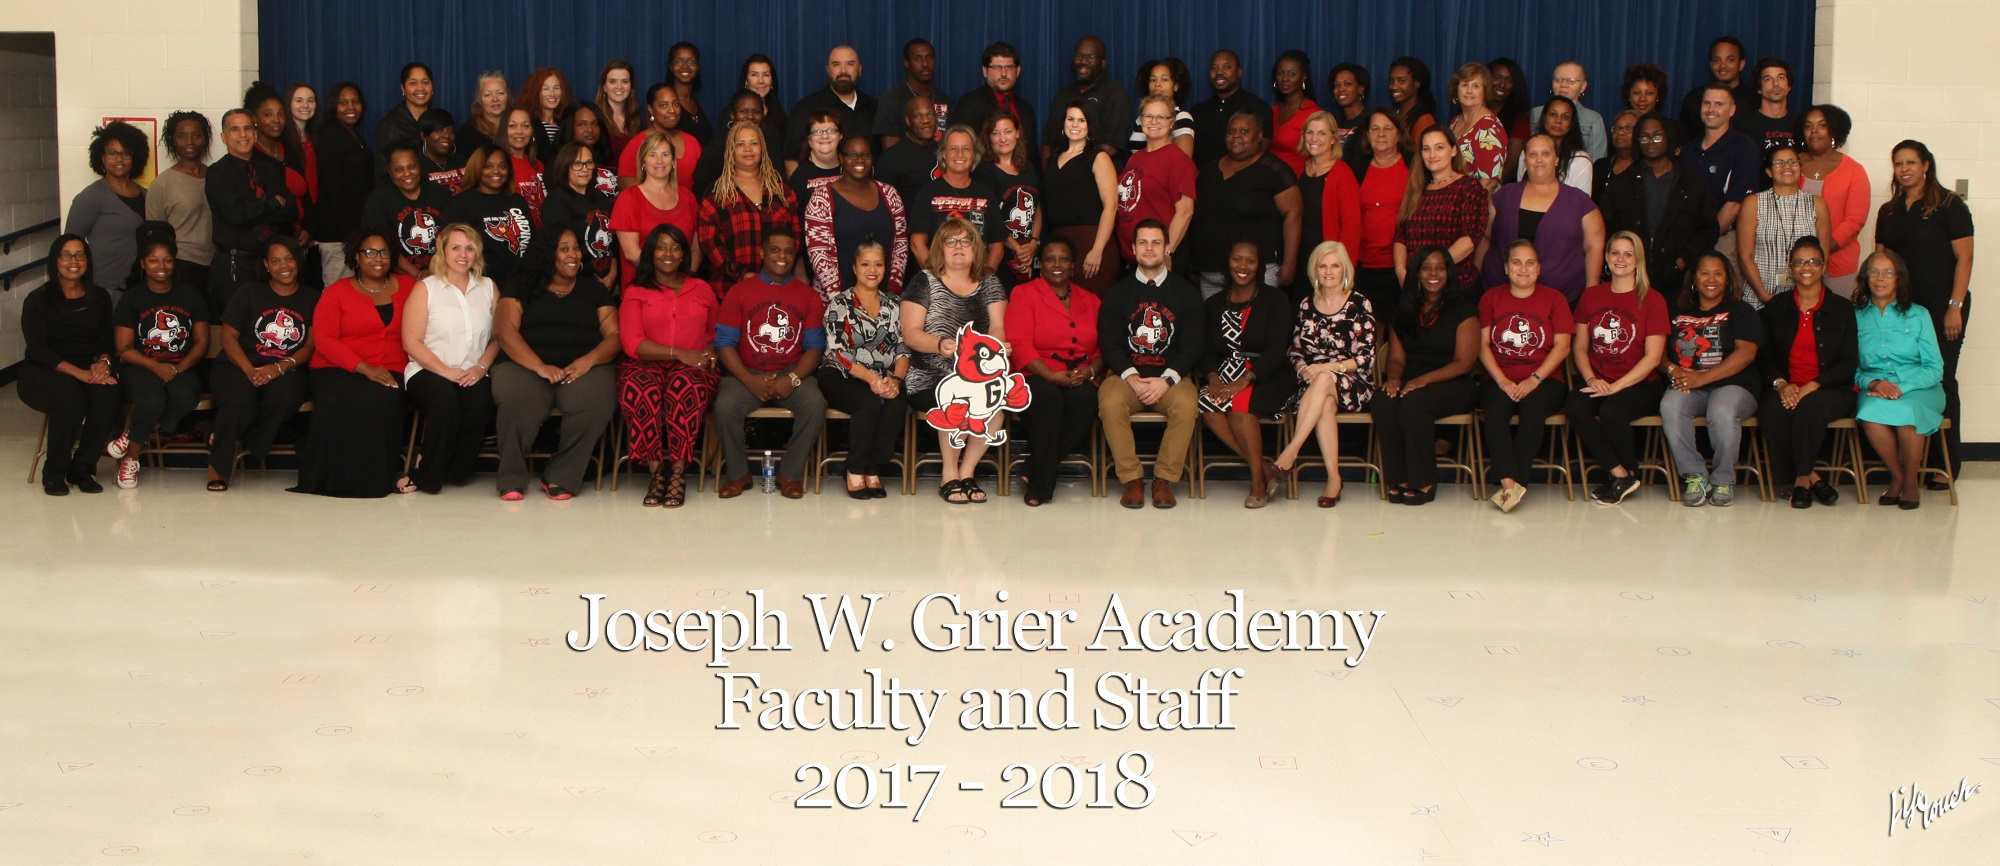 Group photograph of the staff of Joseph W. Grier Academy.